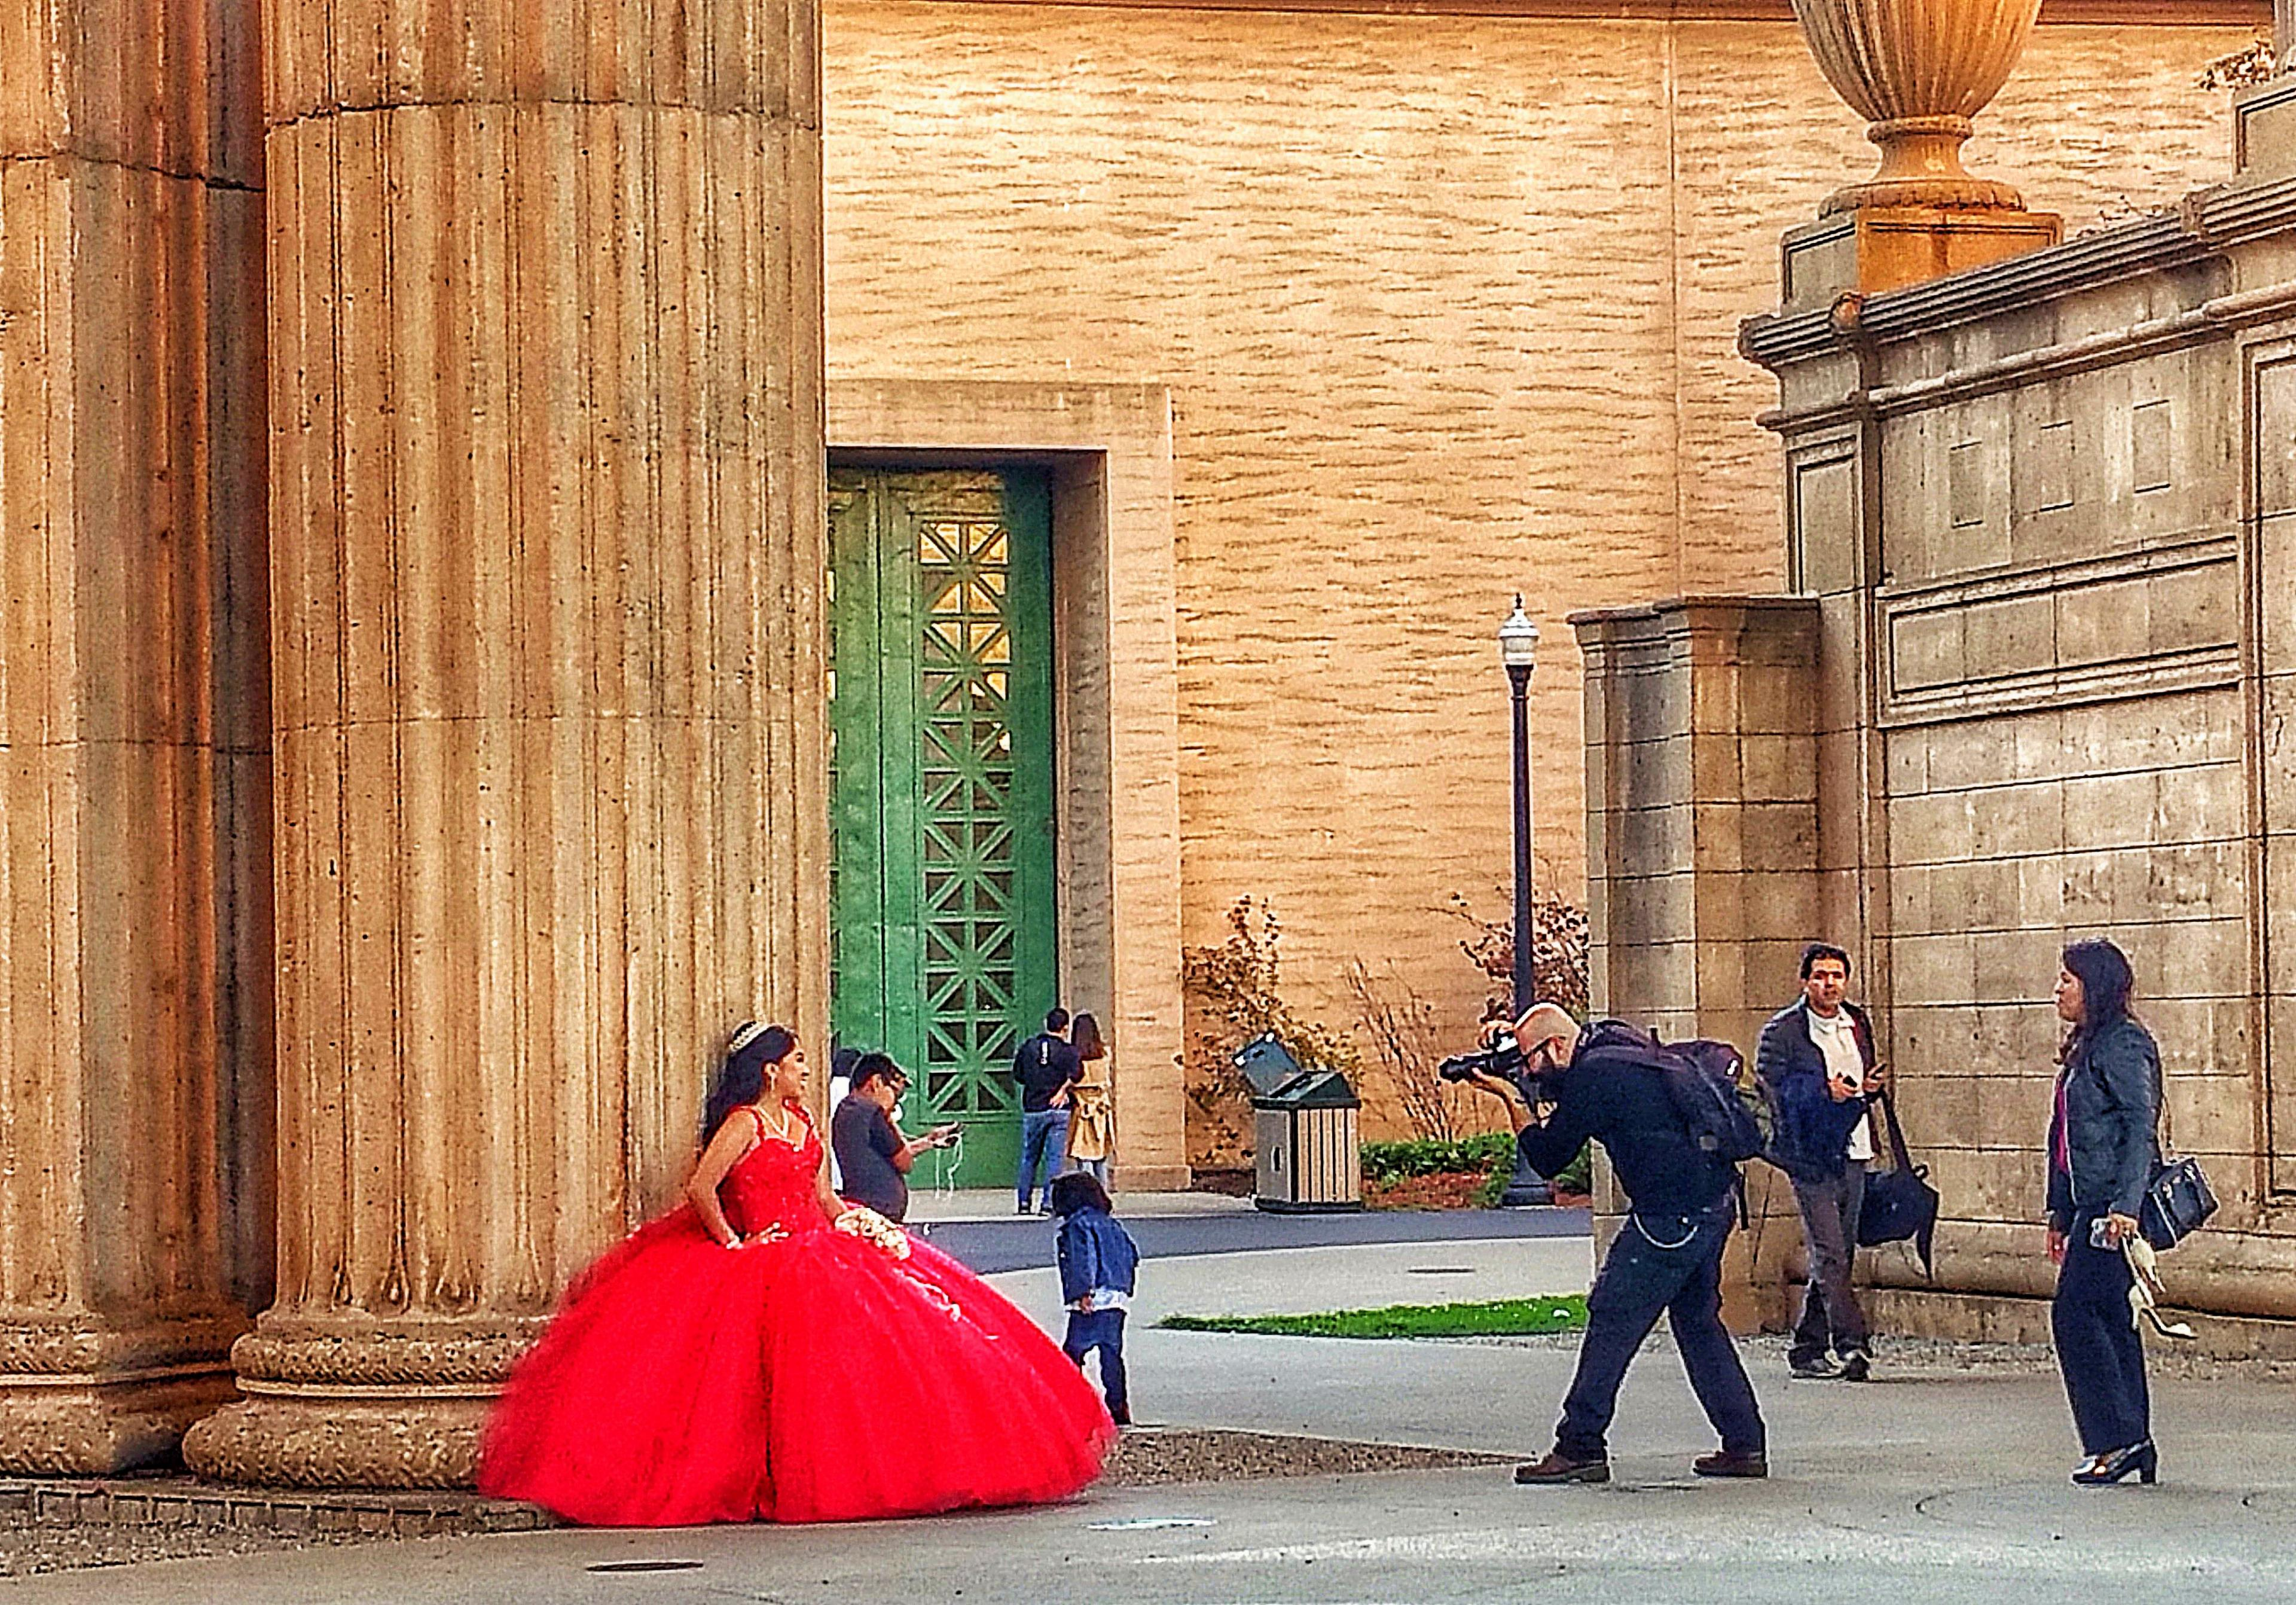 A team of professional photographers, outdoors, takes photos of a quinceañera in a billowing red formal gown.